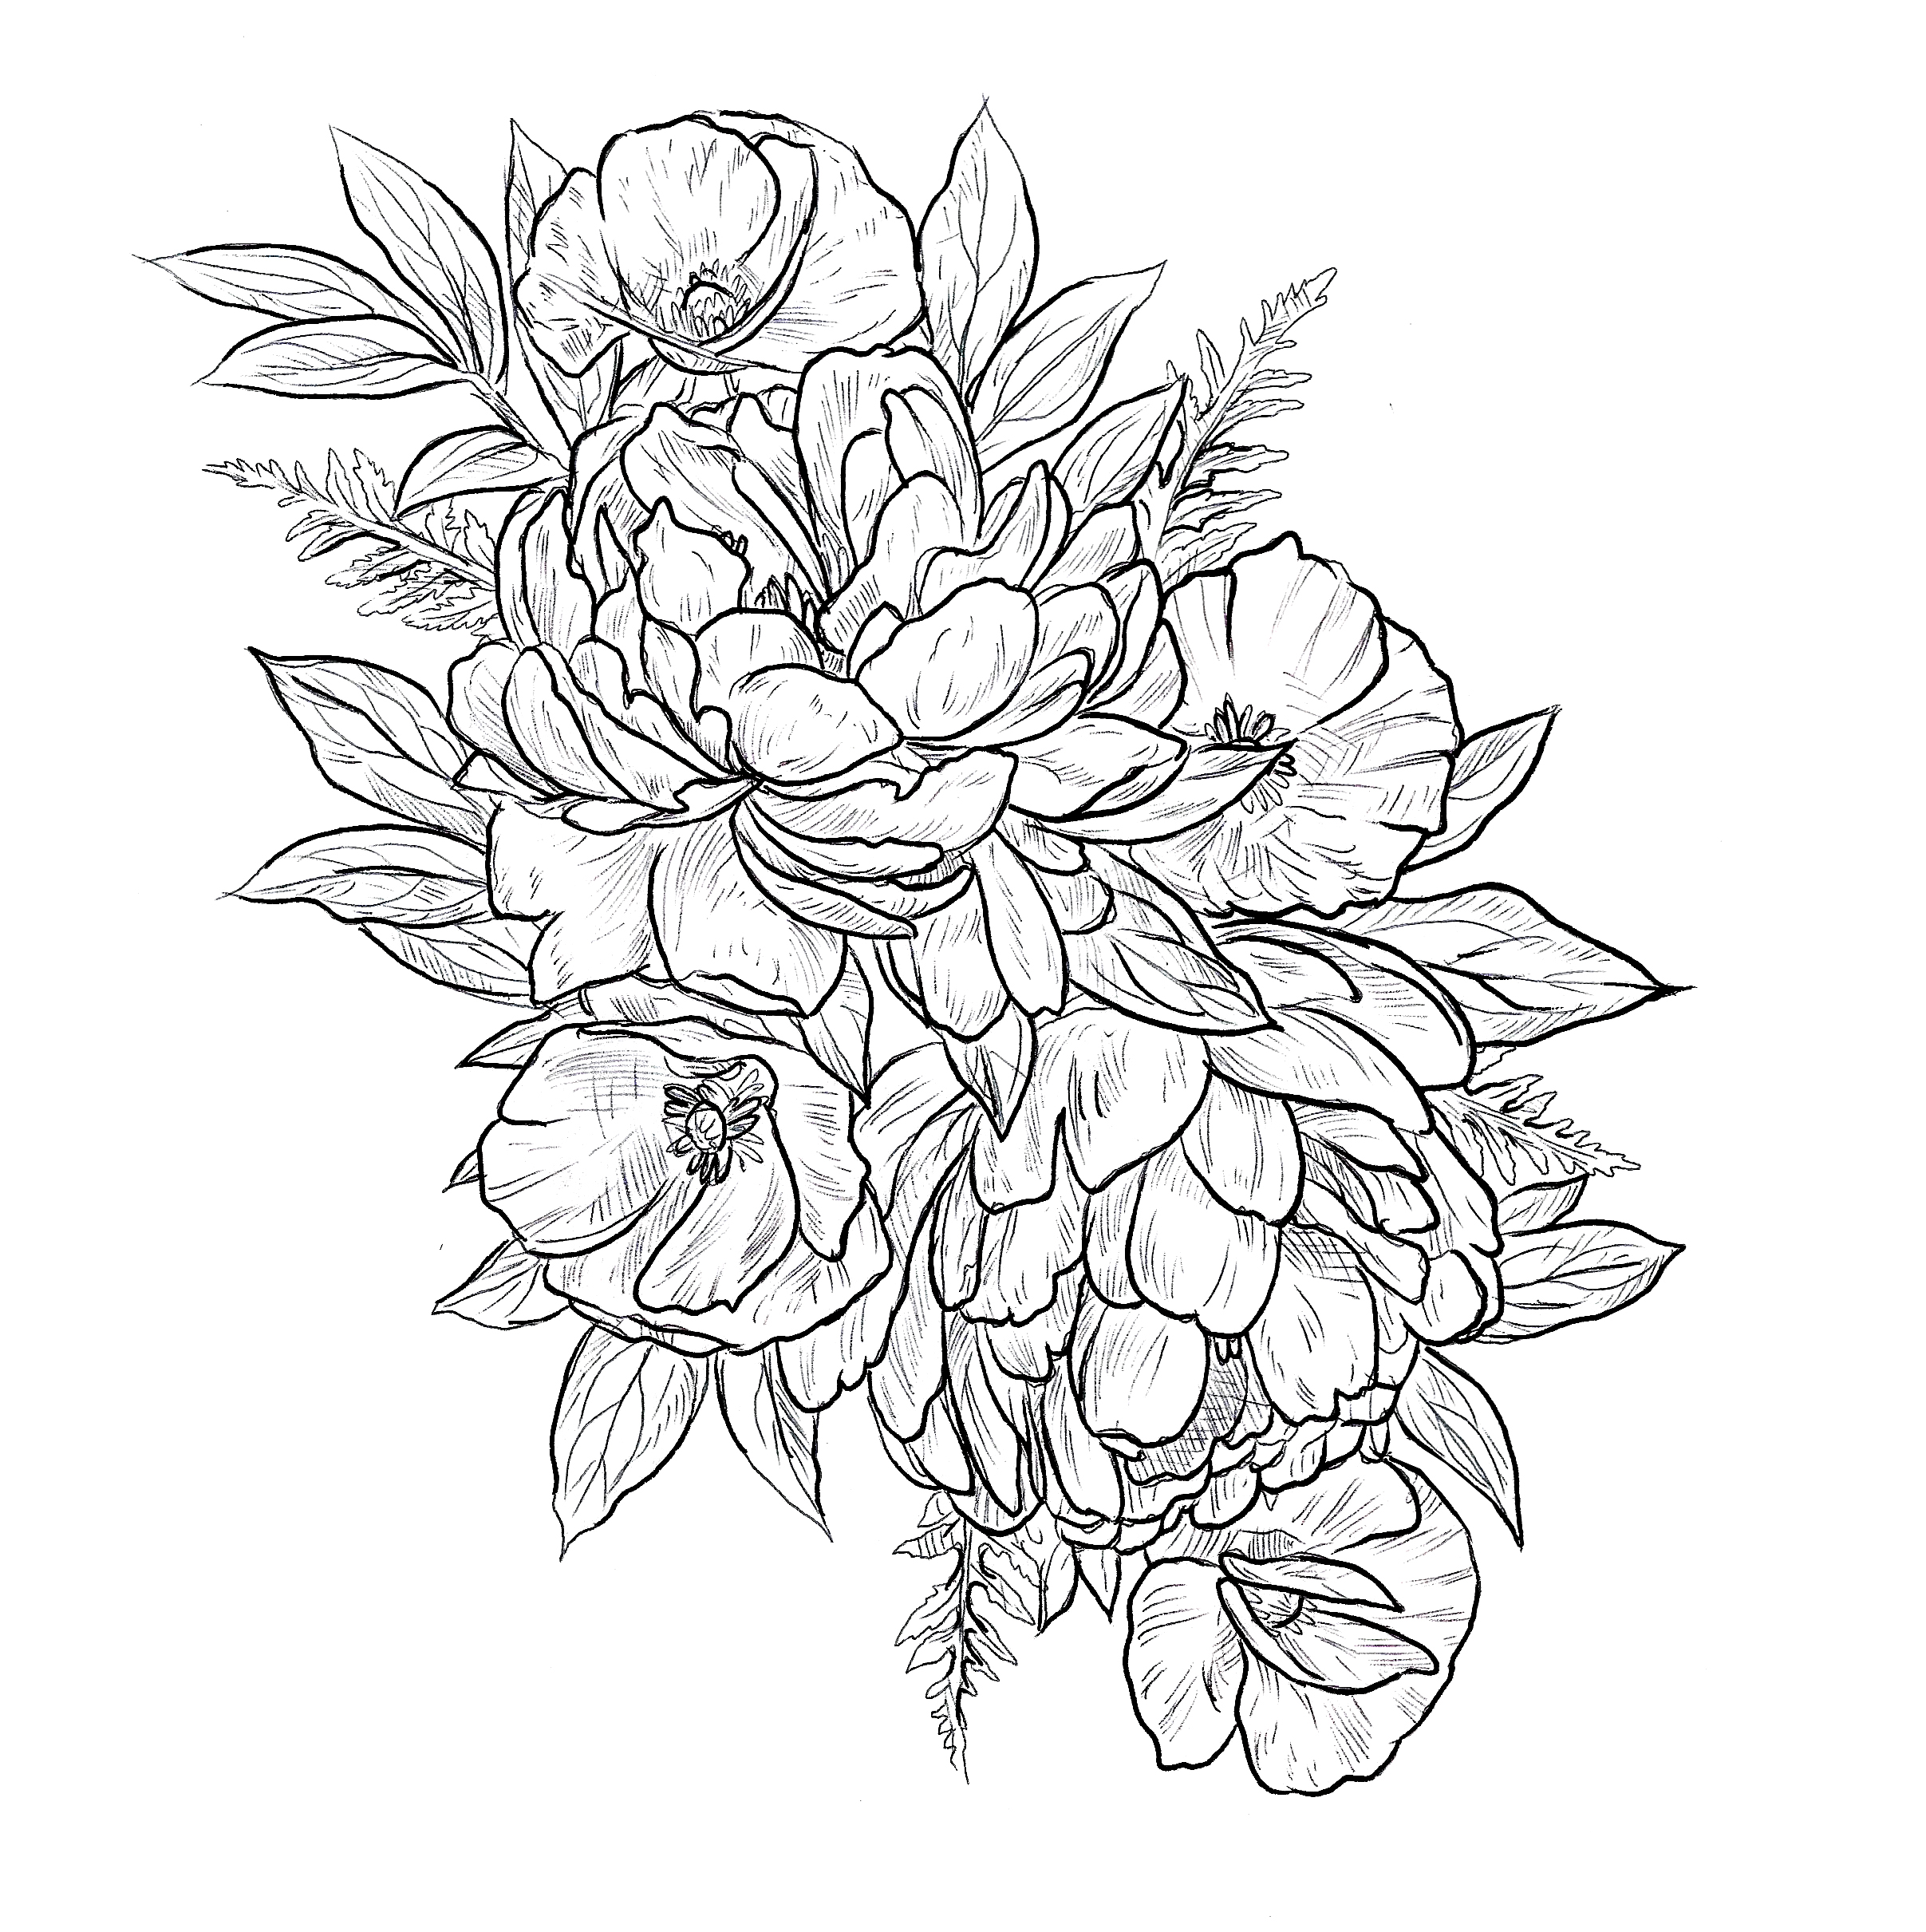 "- *Booked* Peonies and PoppiesLocations: Thigh/hip, armMinimum size: 12"", meant to be largeHourly rateNotes: Can be colored or shaded."